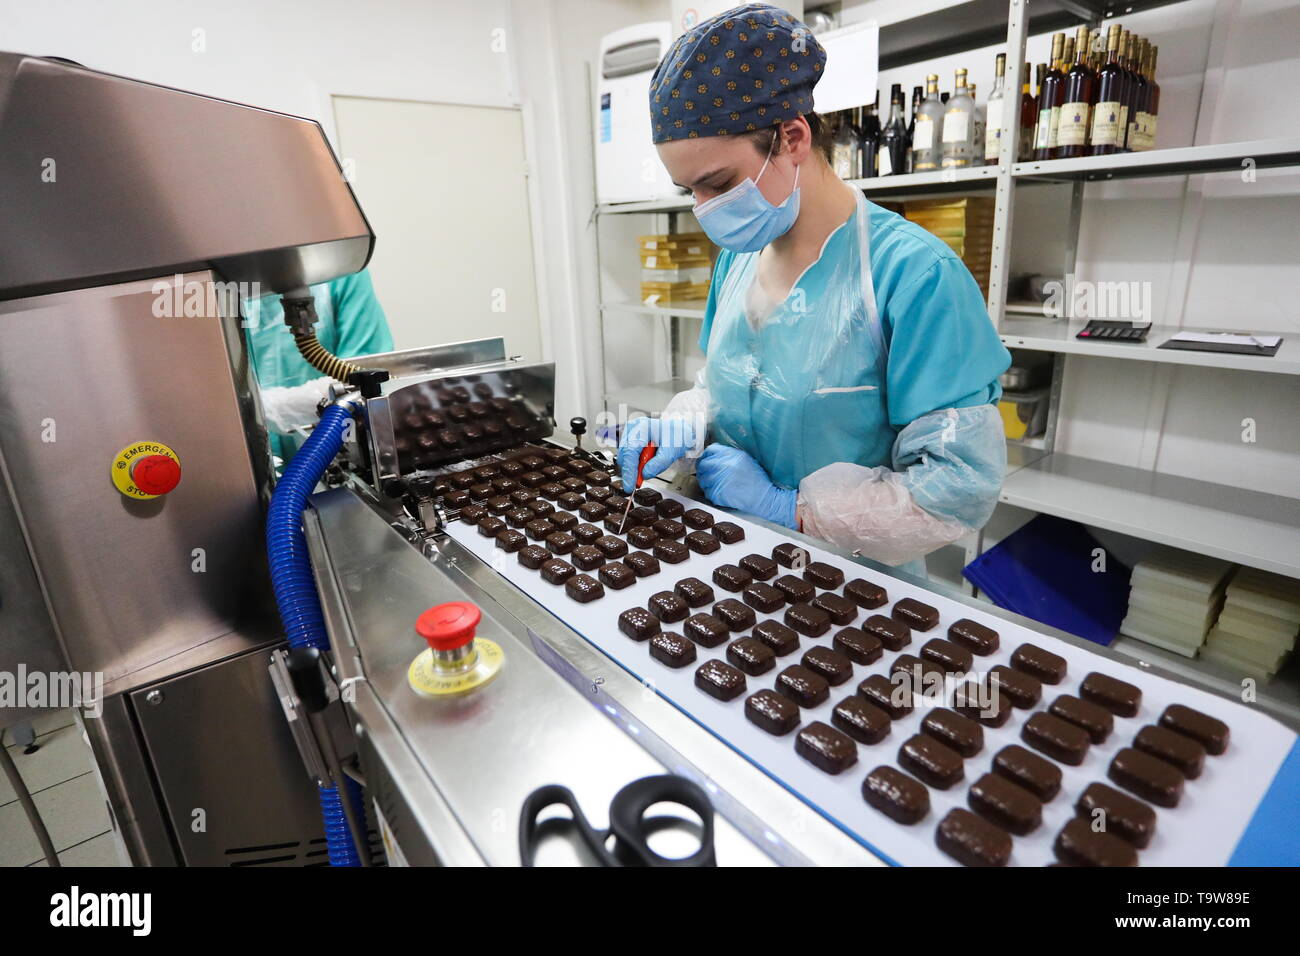 St Petersburg, Russia. 20th May, 2019. ST PETERSBURG, RUSSIA - MAY 20, 2019: Production of sweets bearing images of Russian President Vladimir Putin at the GC - Golden Candies factory. Peter Kovalev/TASS Credit: ITAR-TASS News Agency/Alamy Live News - Stock Image